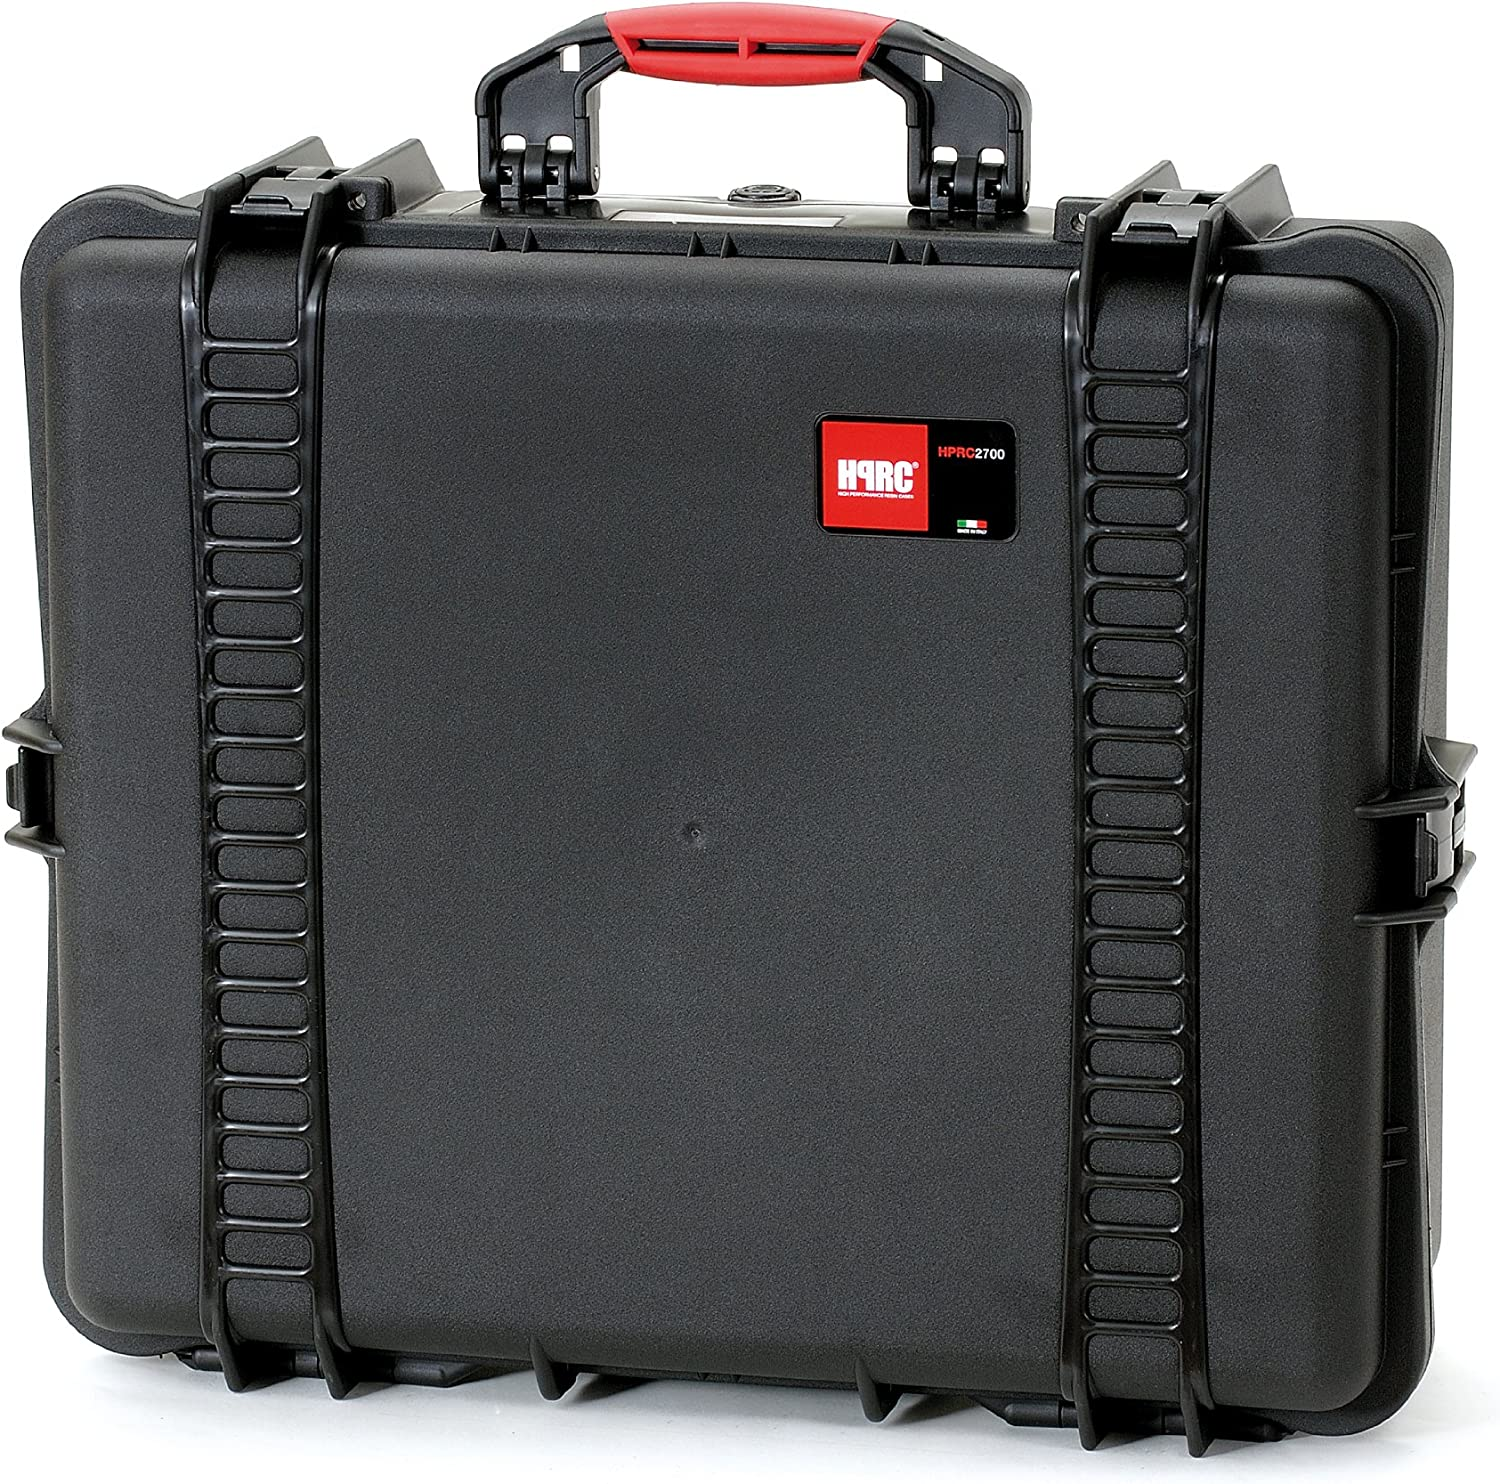 HPRC 2700E Empty Hard Case (Black)